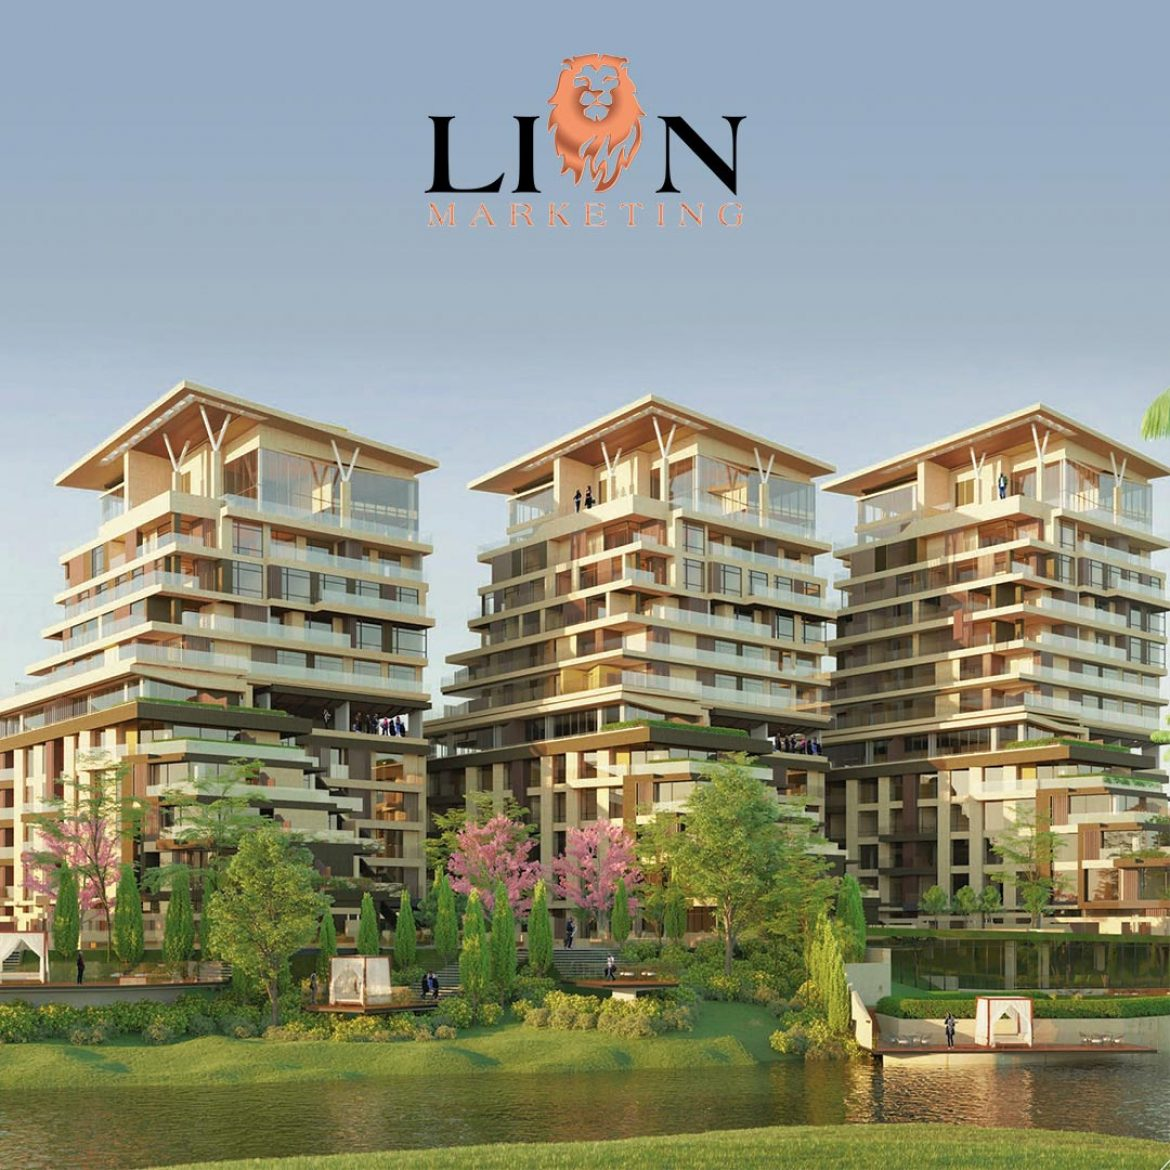 Real Estate Real Estate Company in Lahore Pakistan   LionHDB